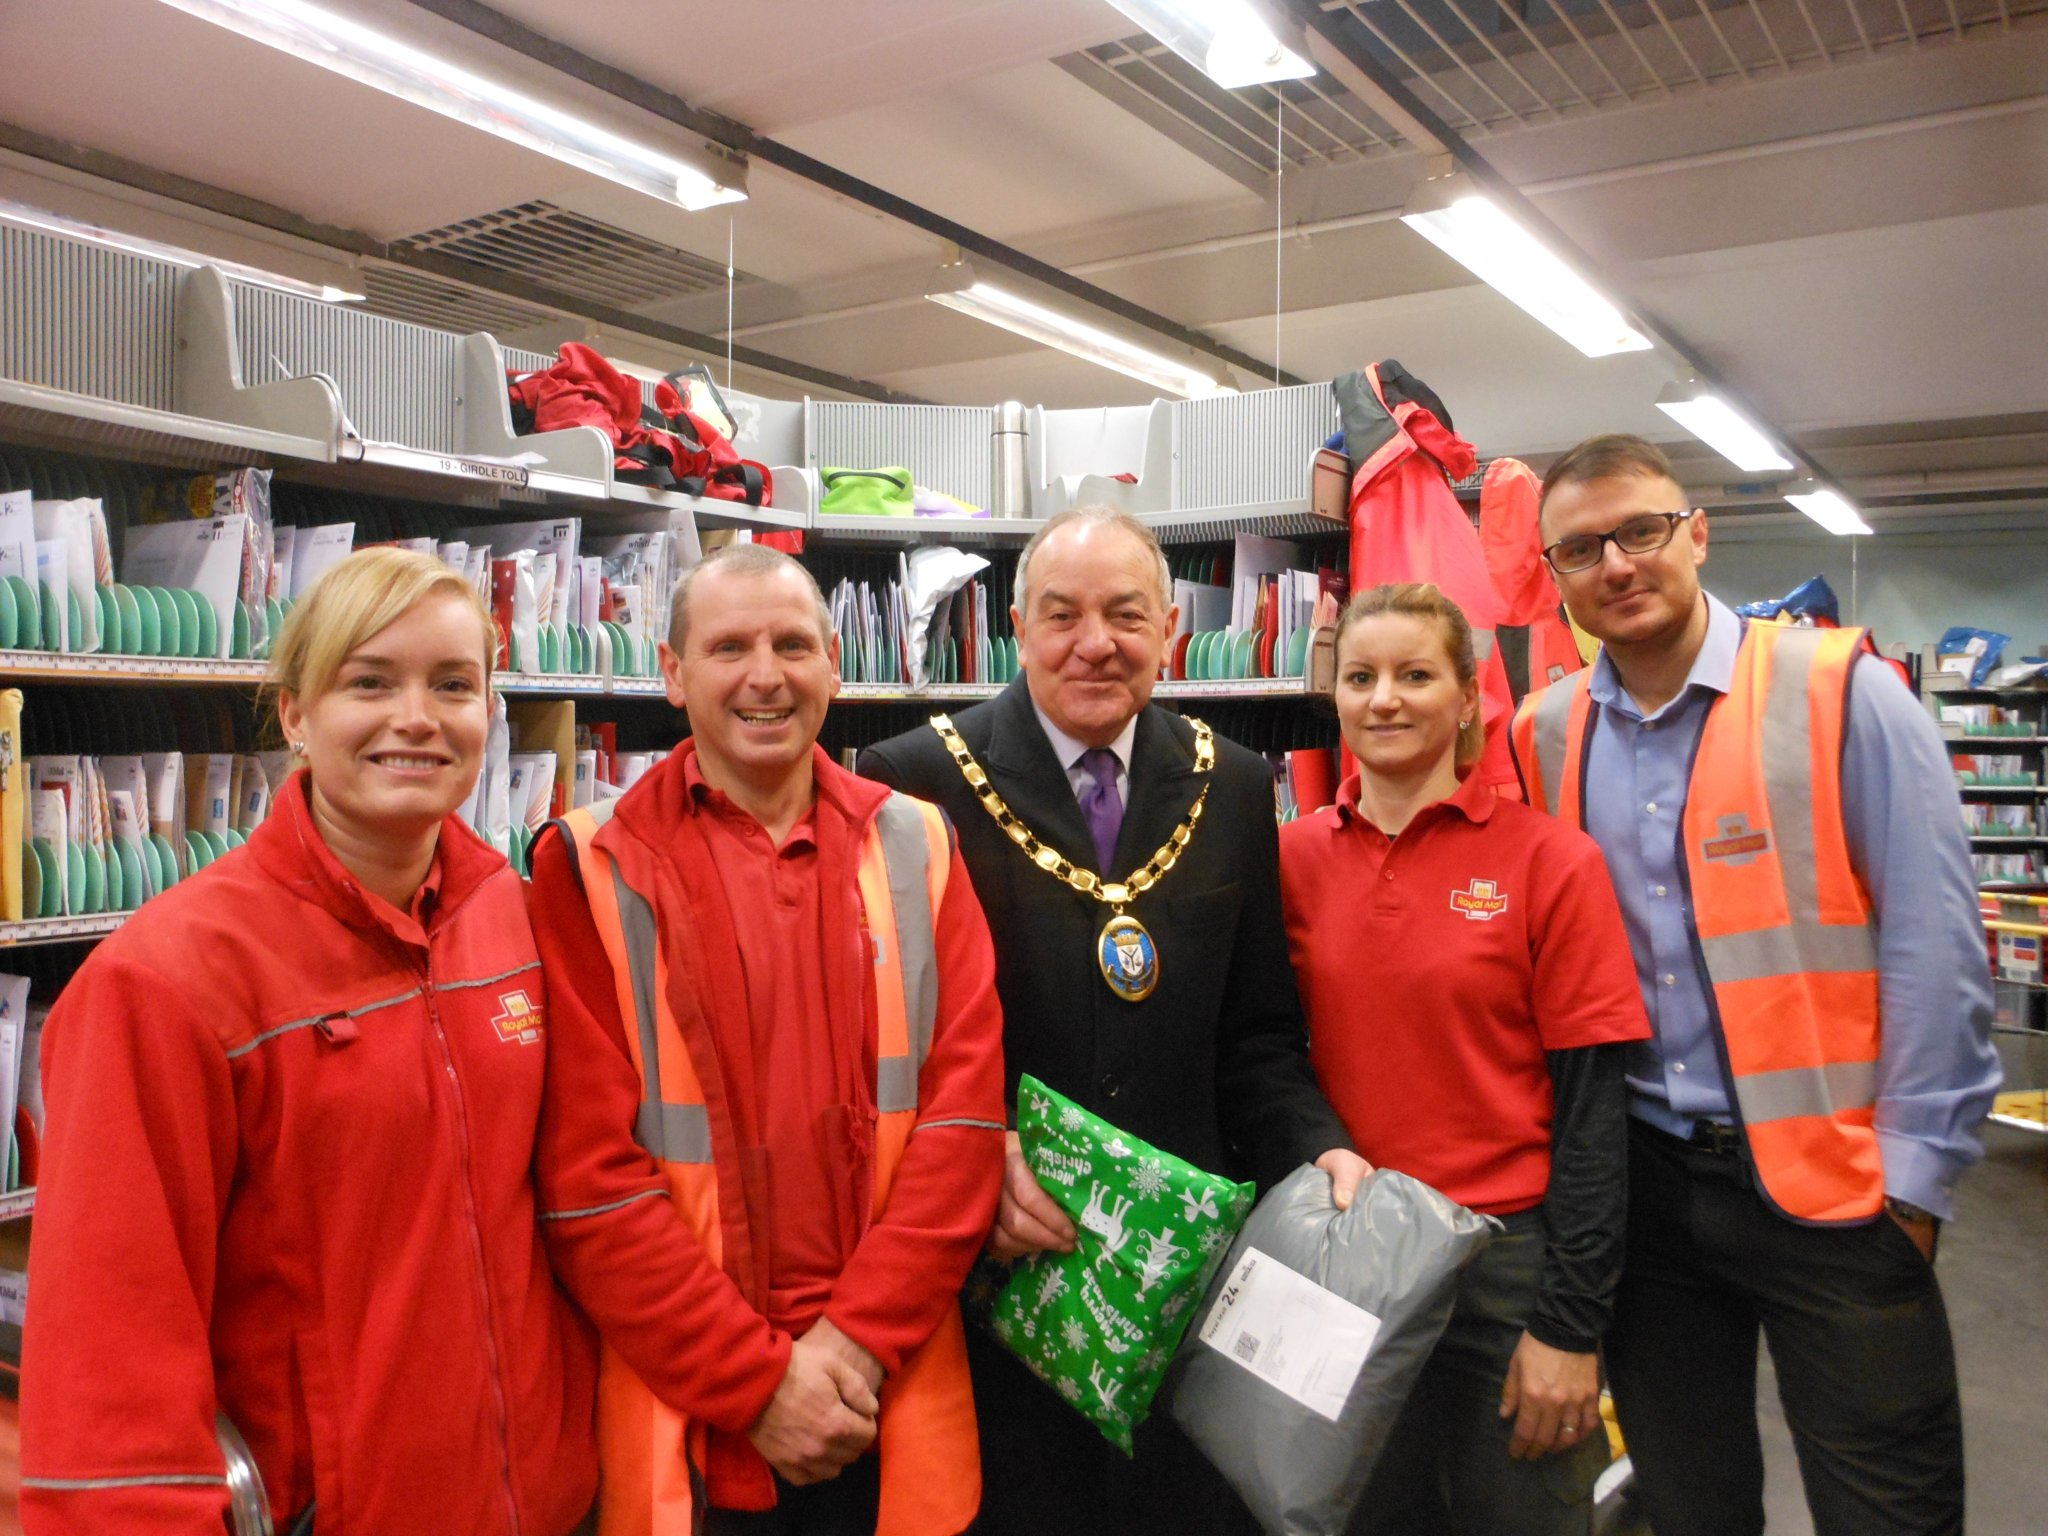 Provost praise for postal service